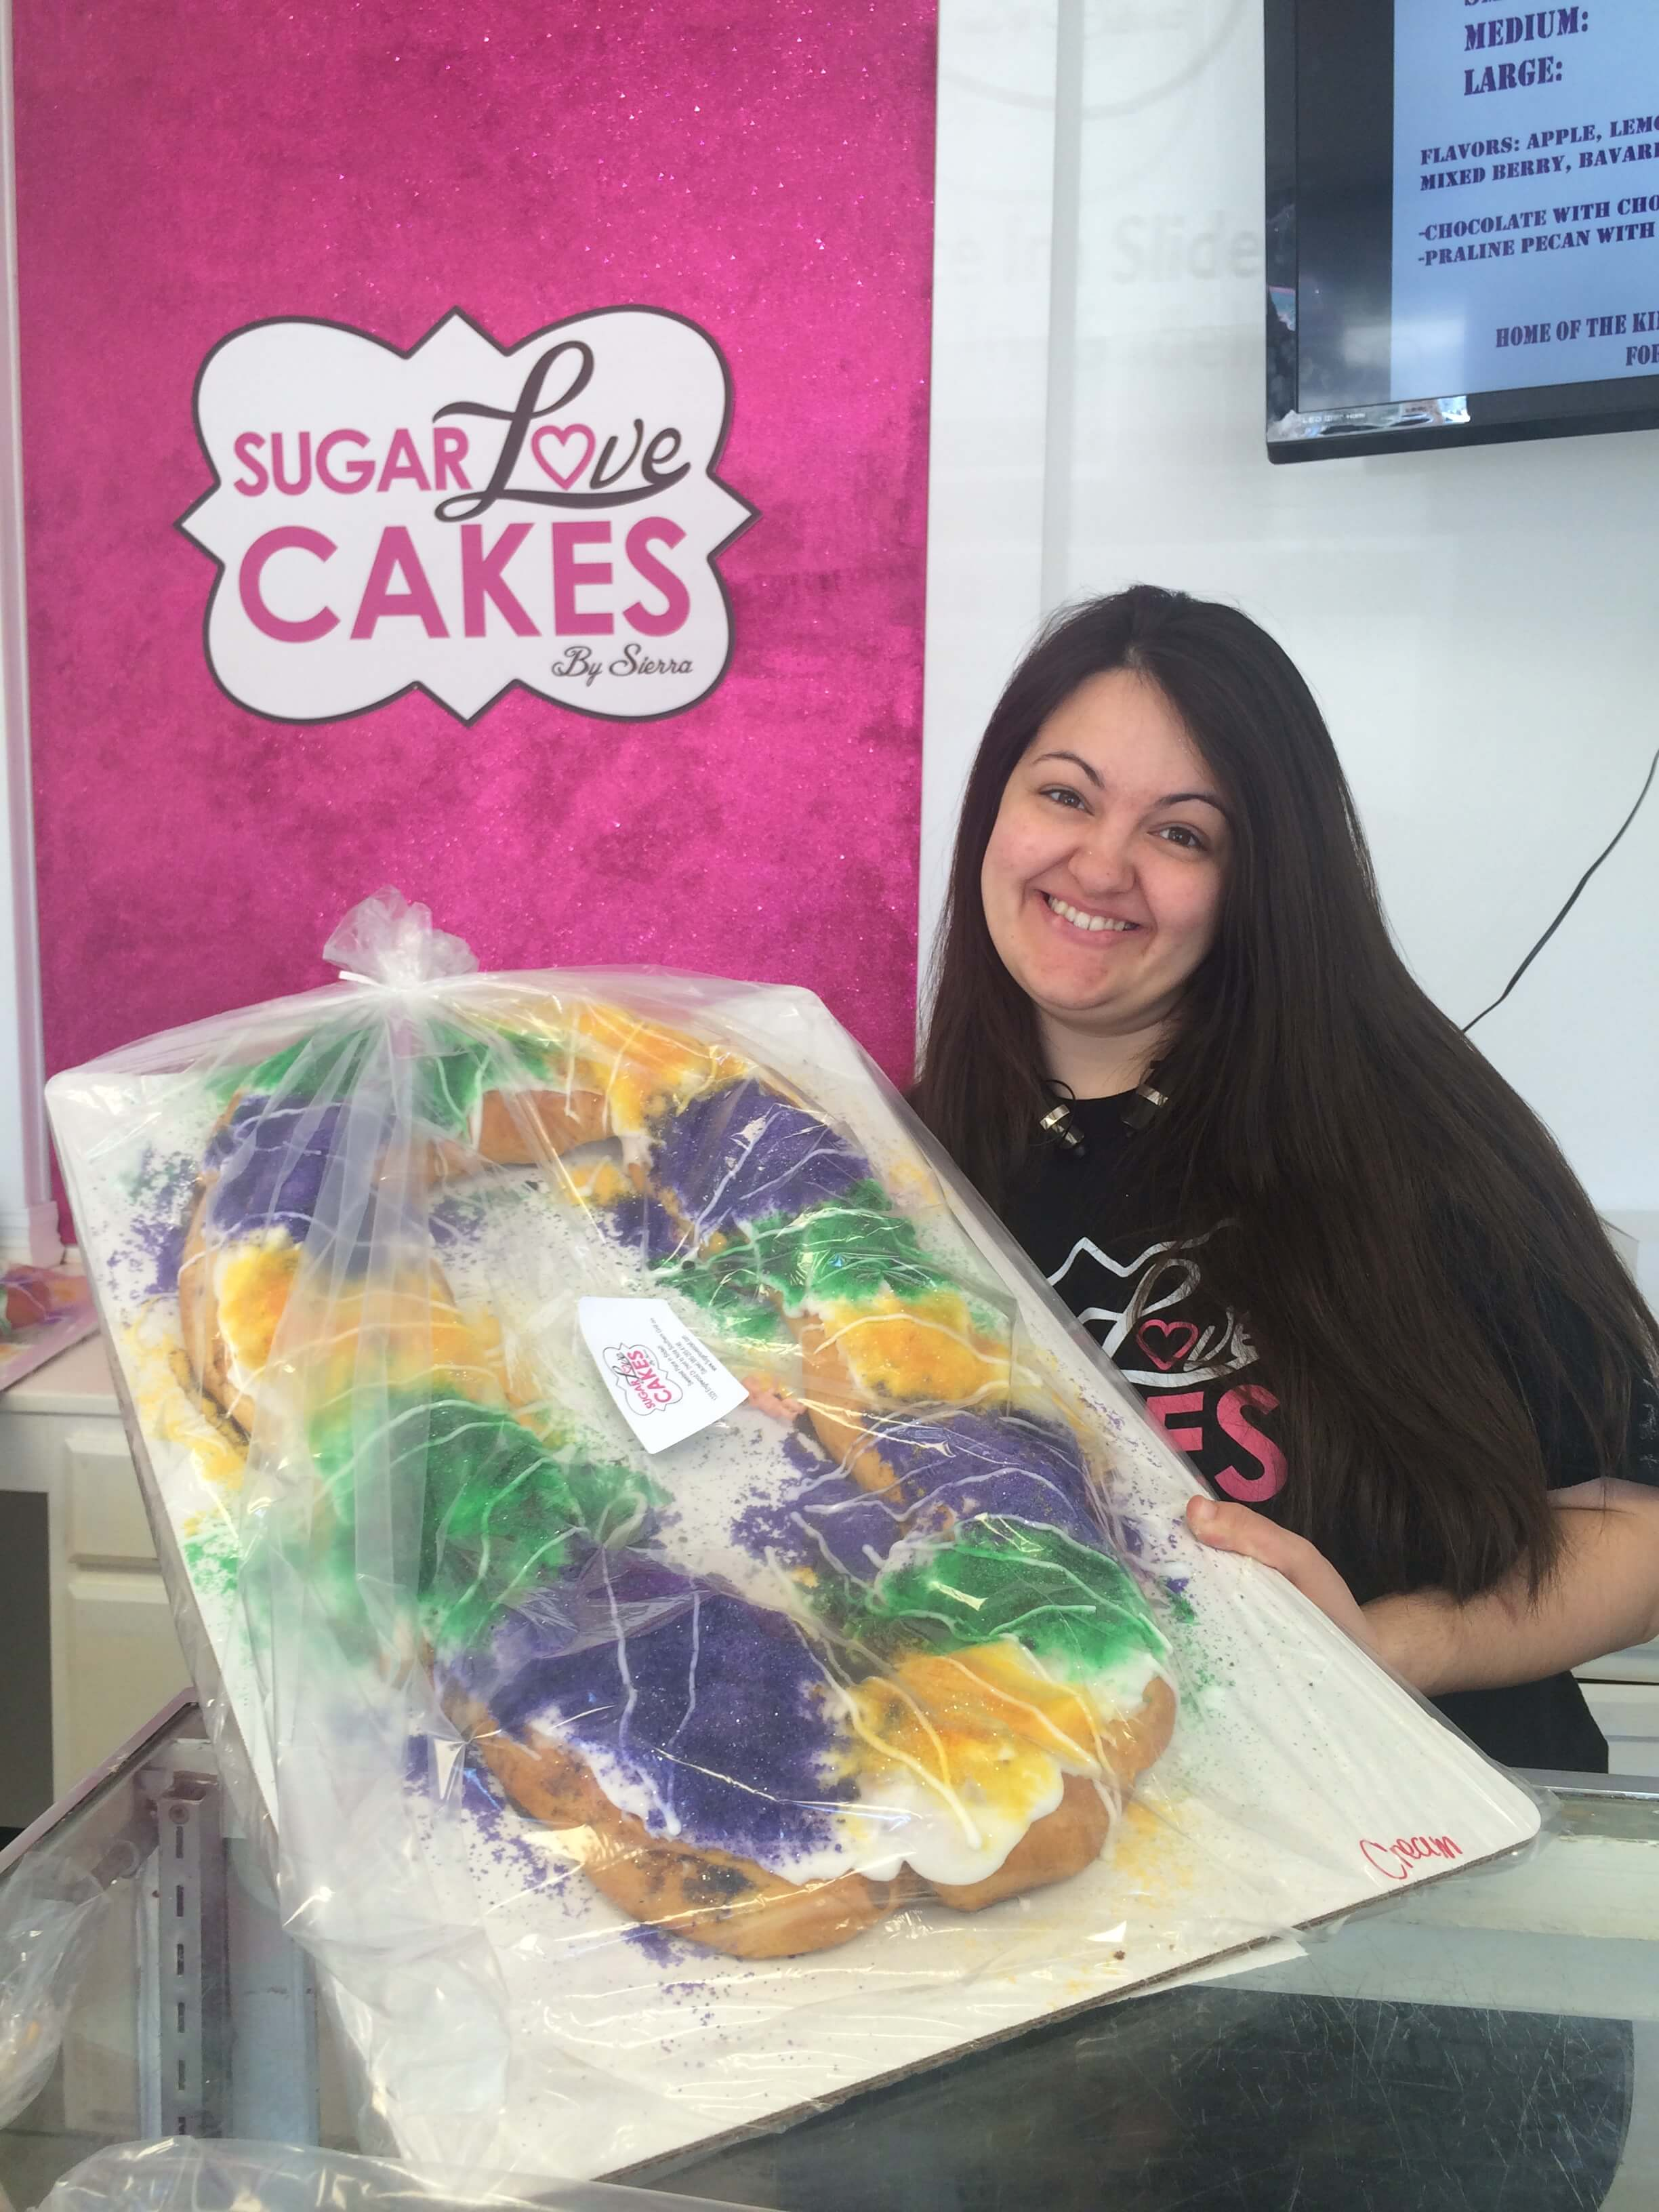 Local Dish: King Cake on a Stick From Sugar Love Cakes